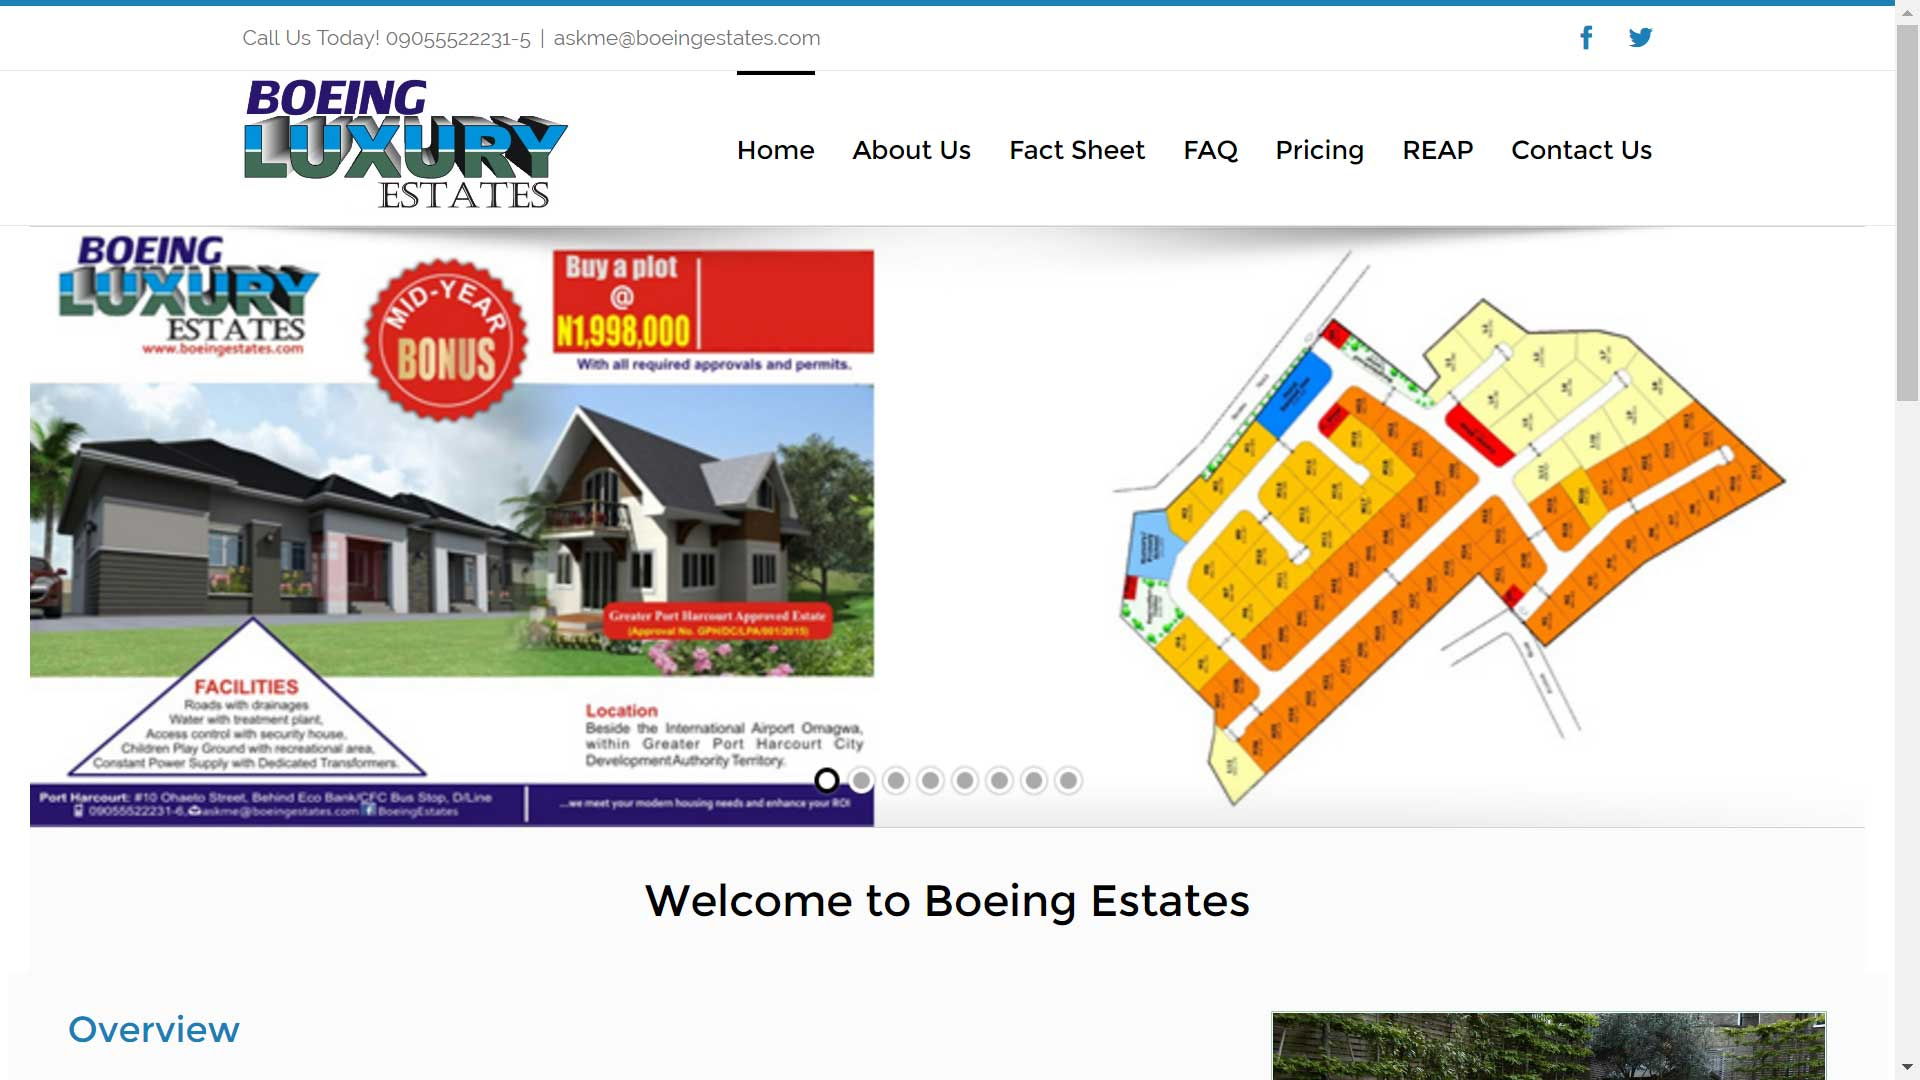 Boeing Luxury Estates